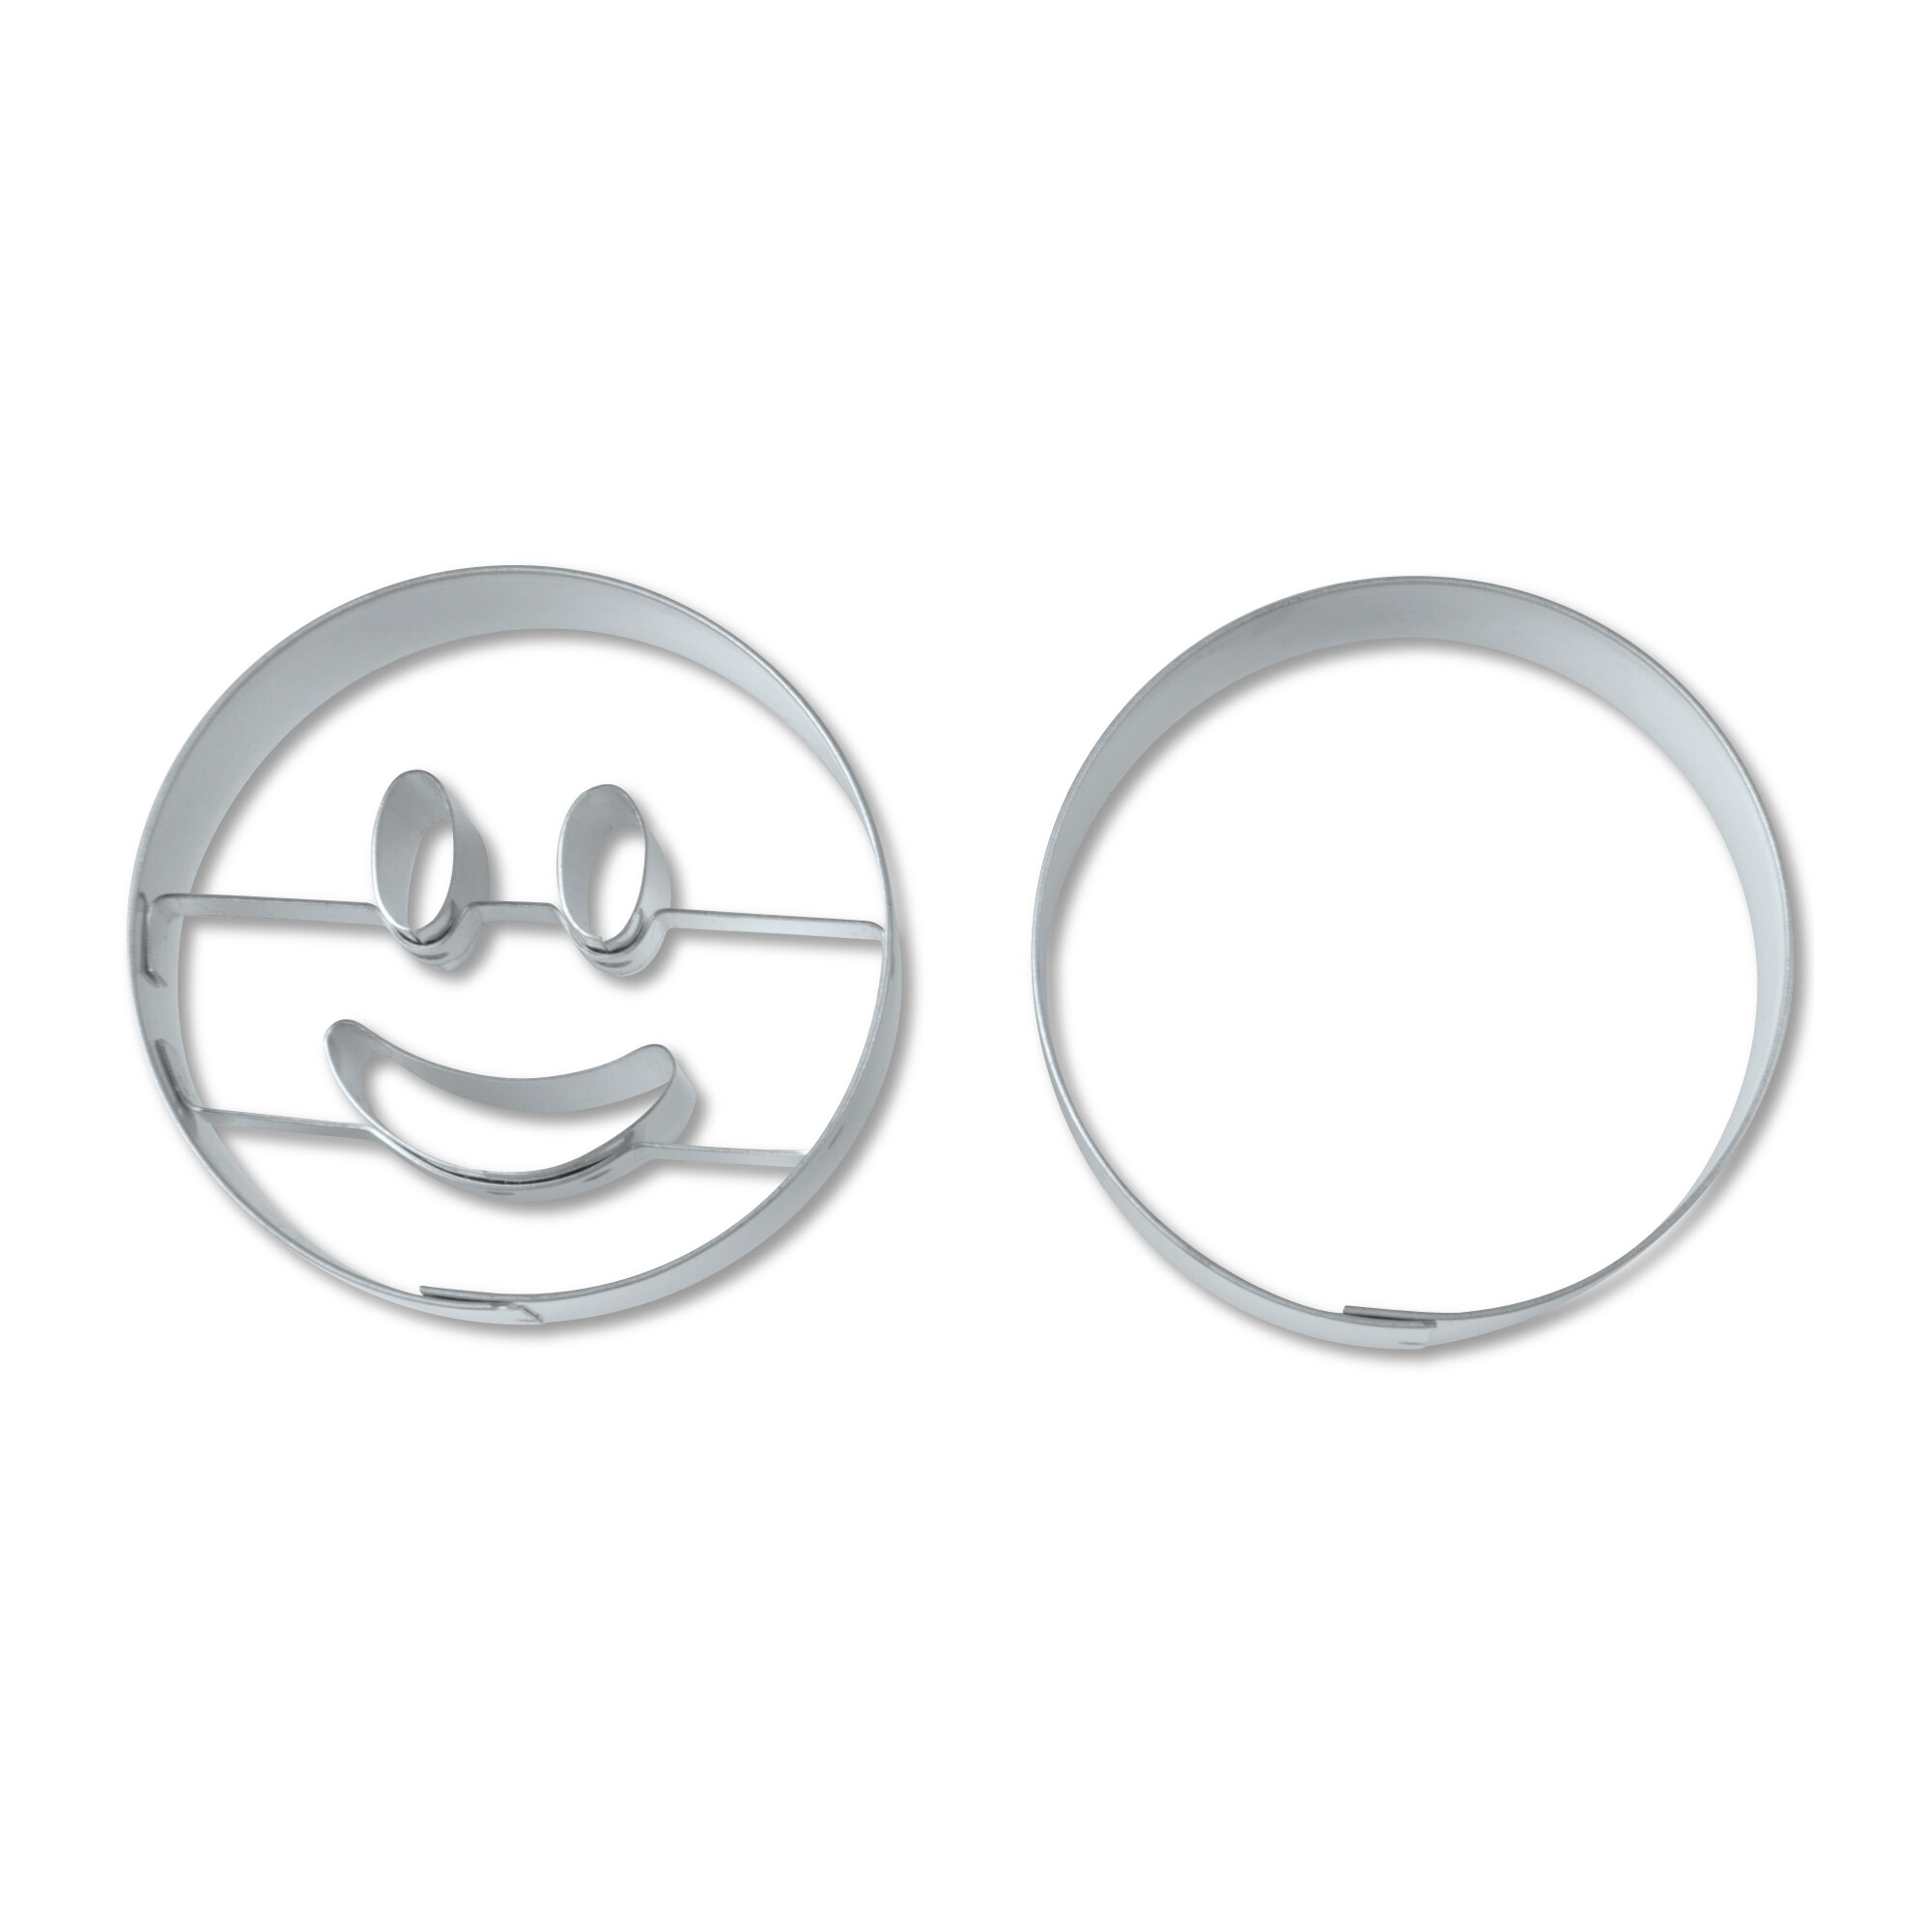 Cookie cutter with stamp - Laughing circle - Set, 2 parts